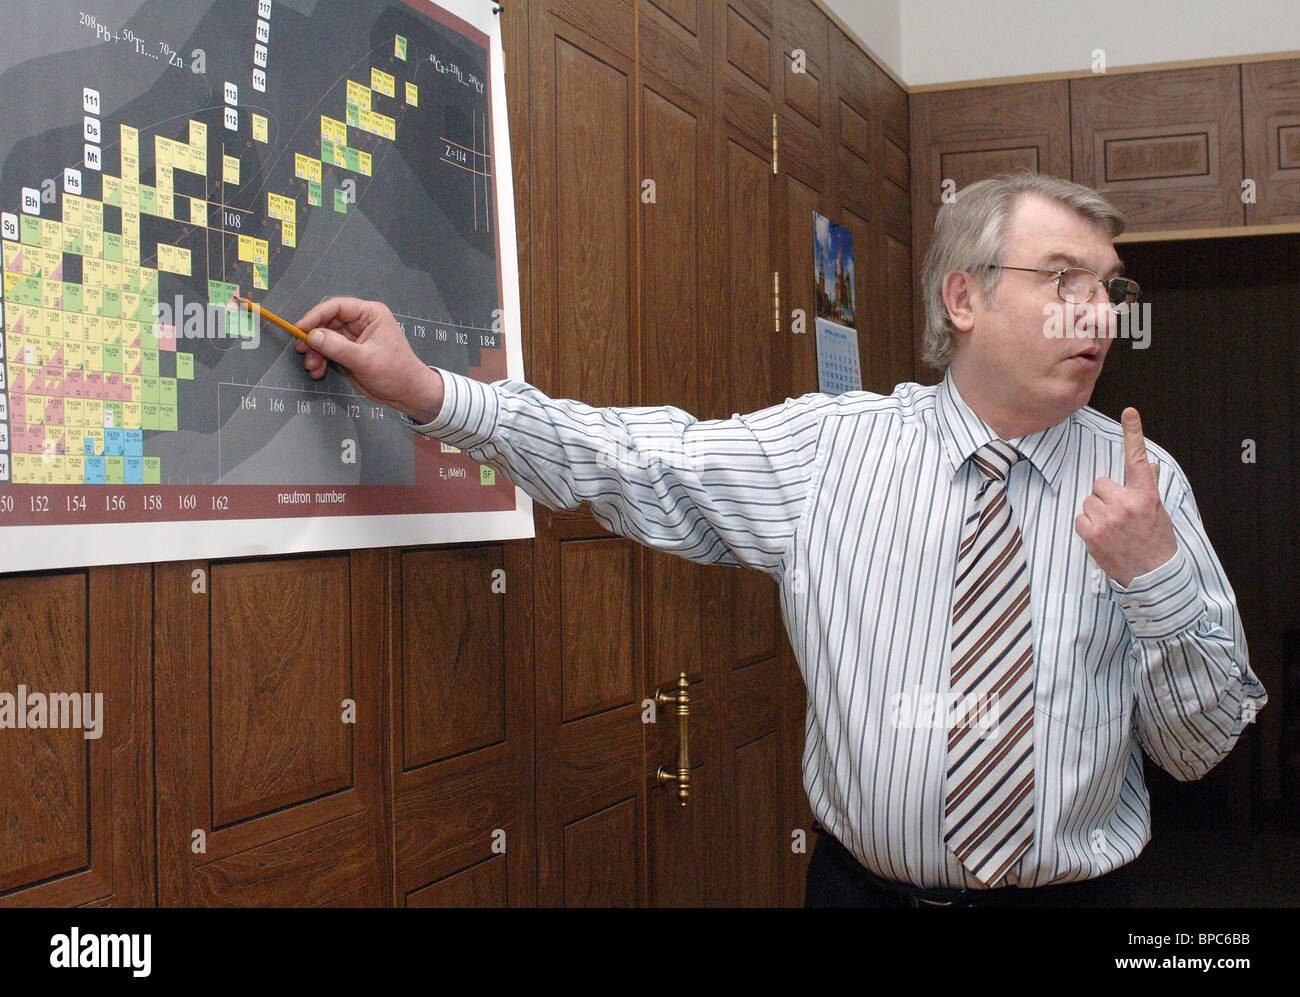 Discovery of new elements to be added to Periodic Table confirmed in Dubna - Stock Image